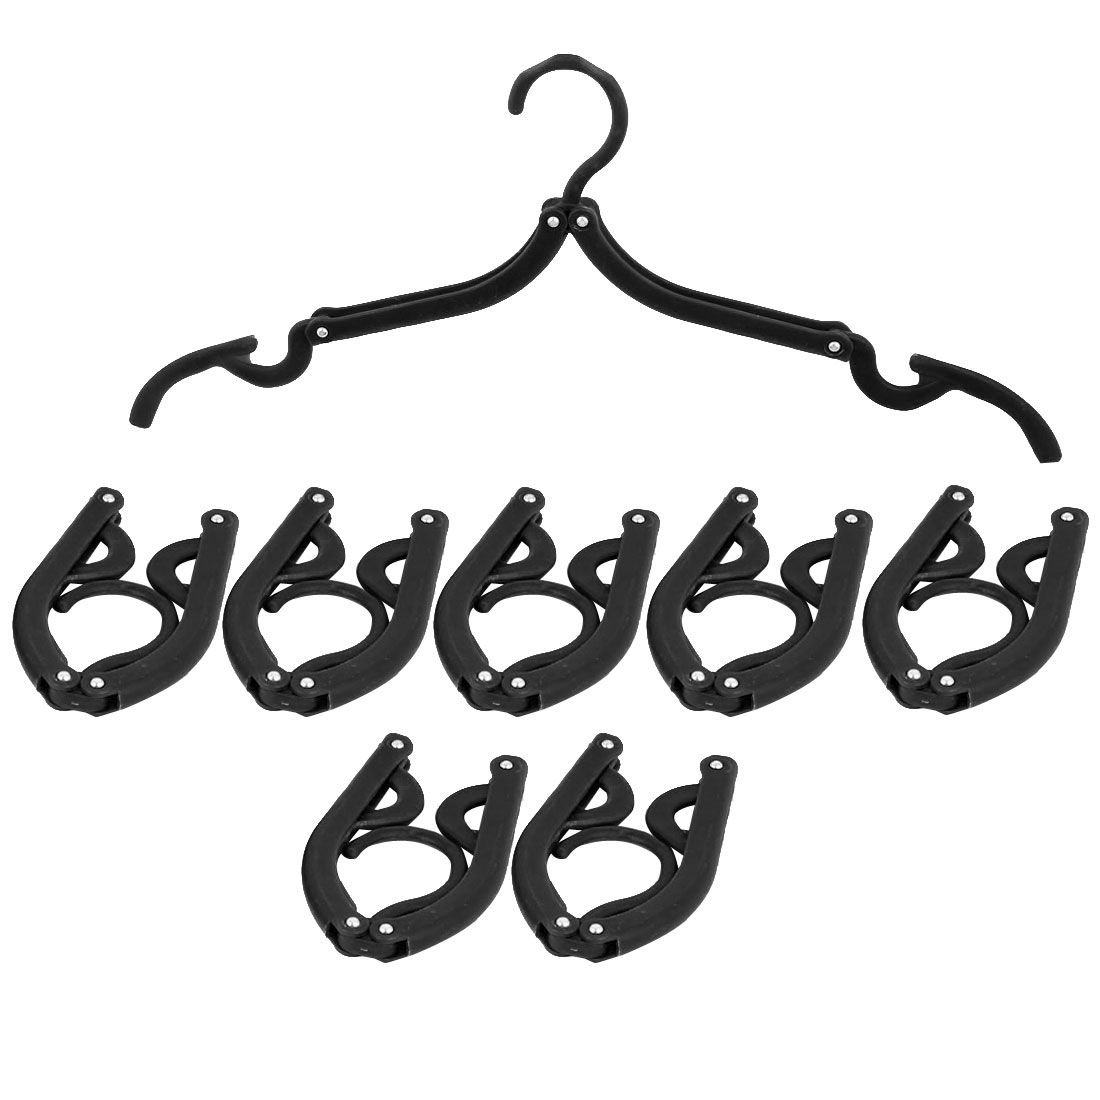 Household Travel Camping Portable Non-slip Folding Clothes Hangers Black 8 Pcs